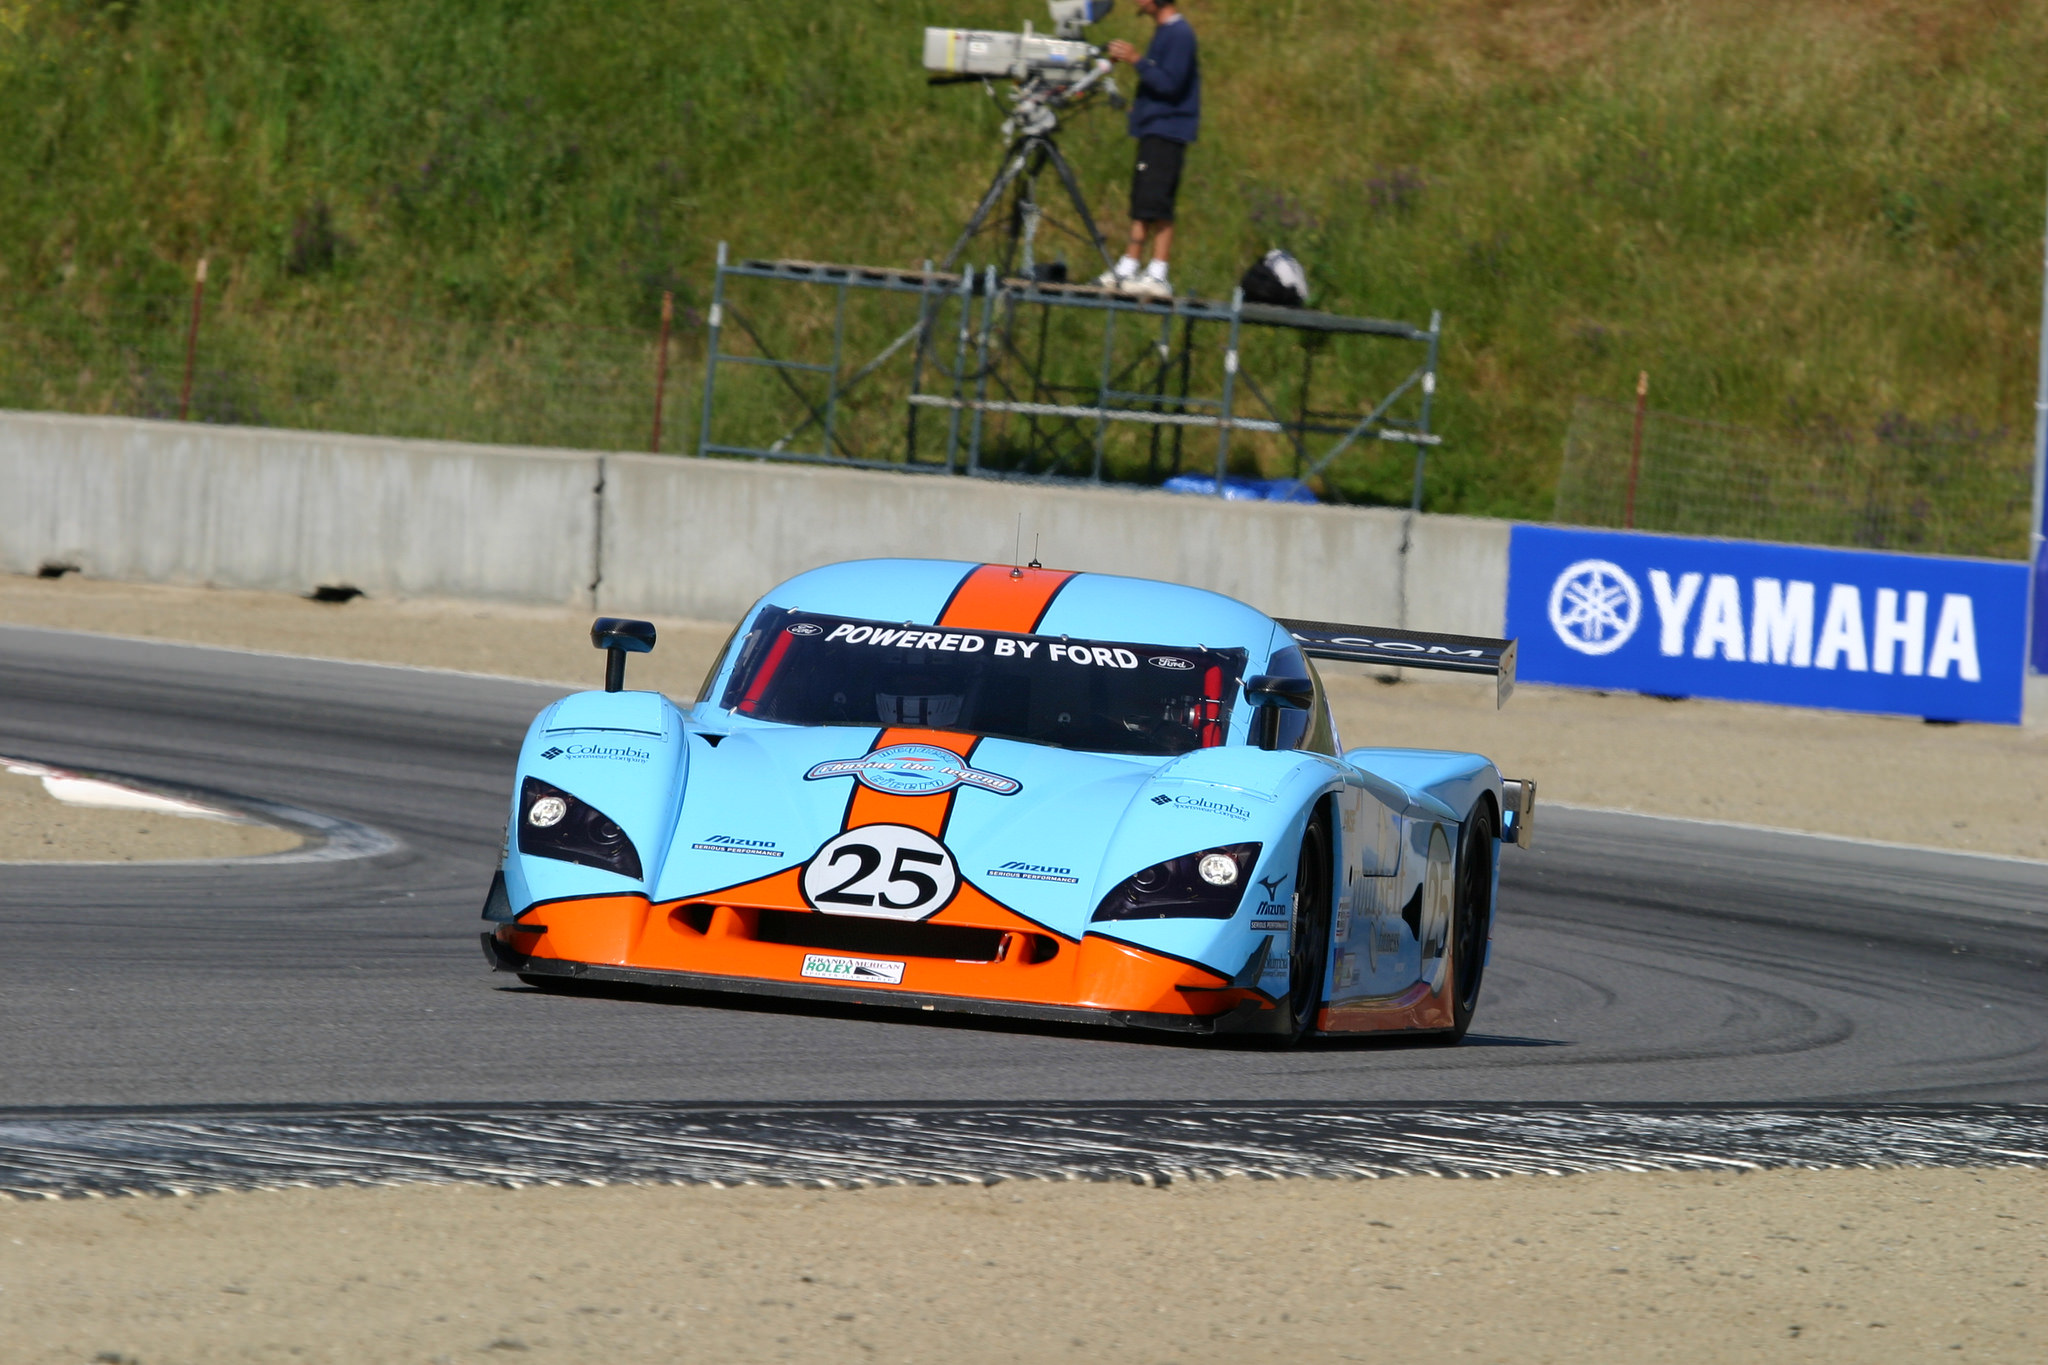 Chad McQueen on track in the Ford Crawford DP03.